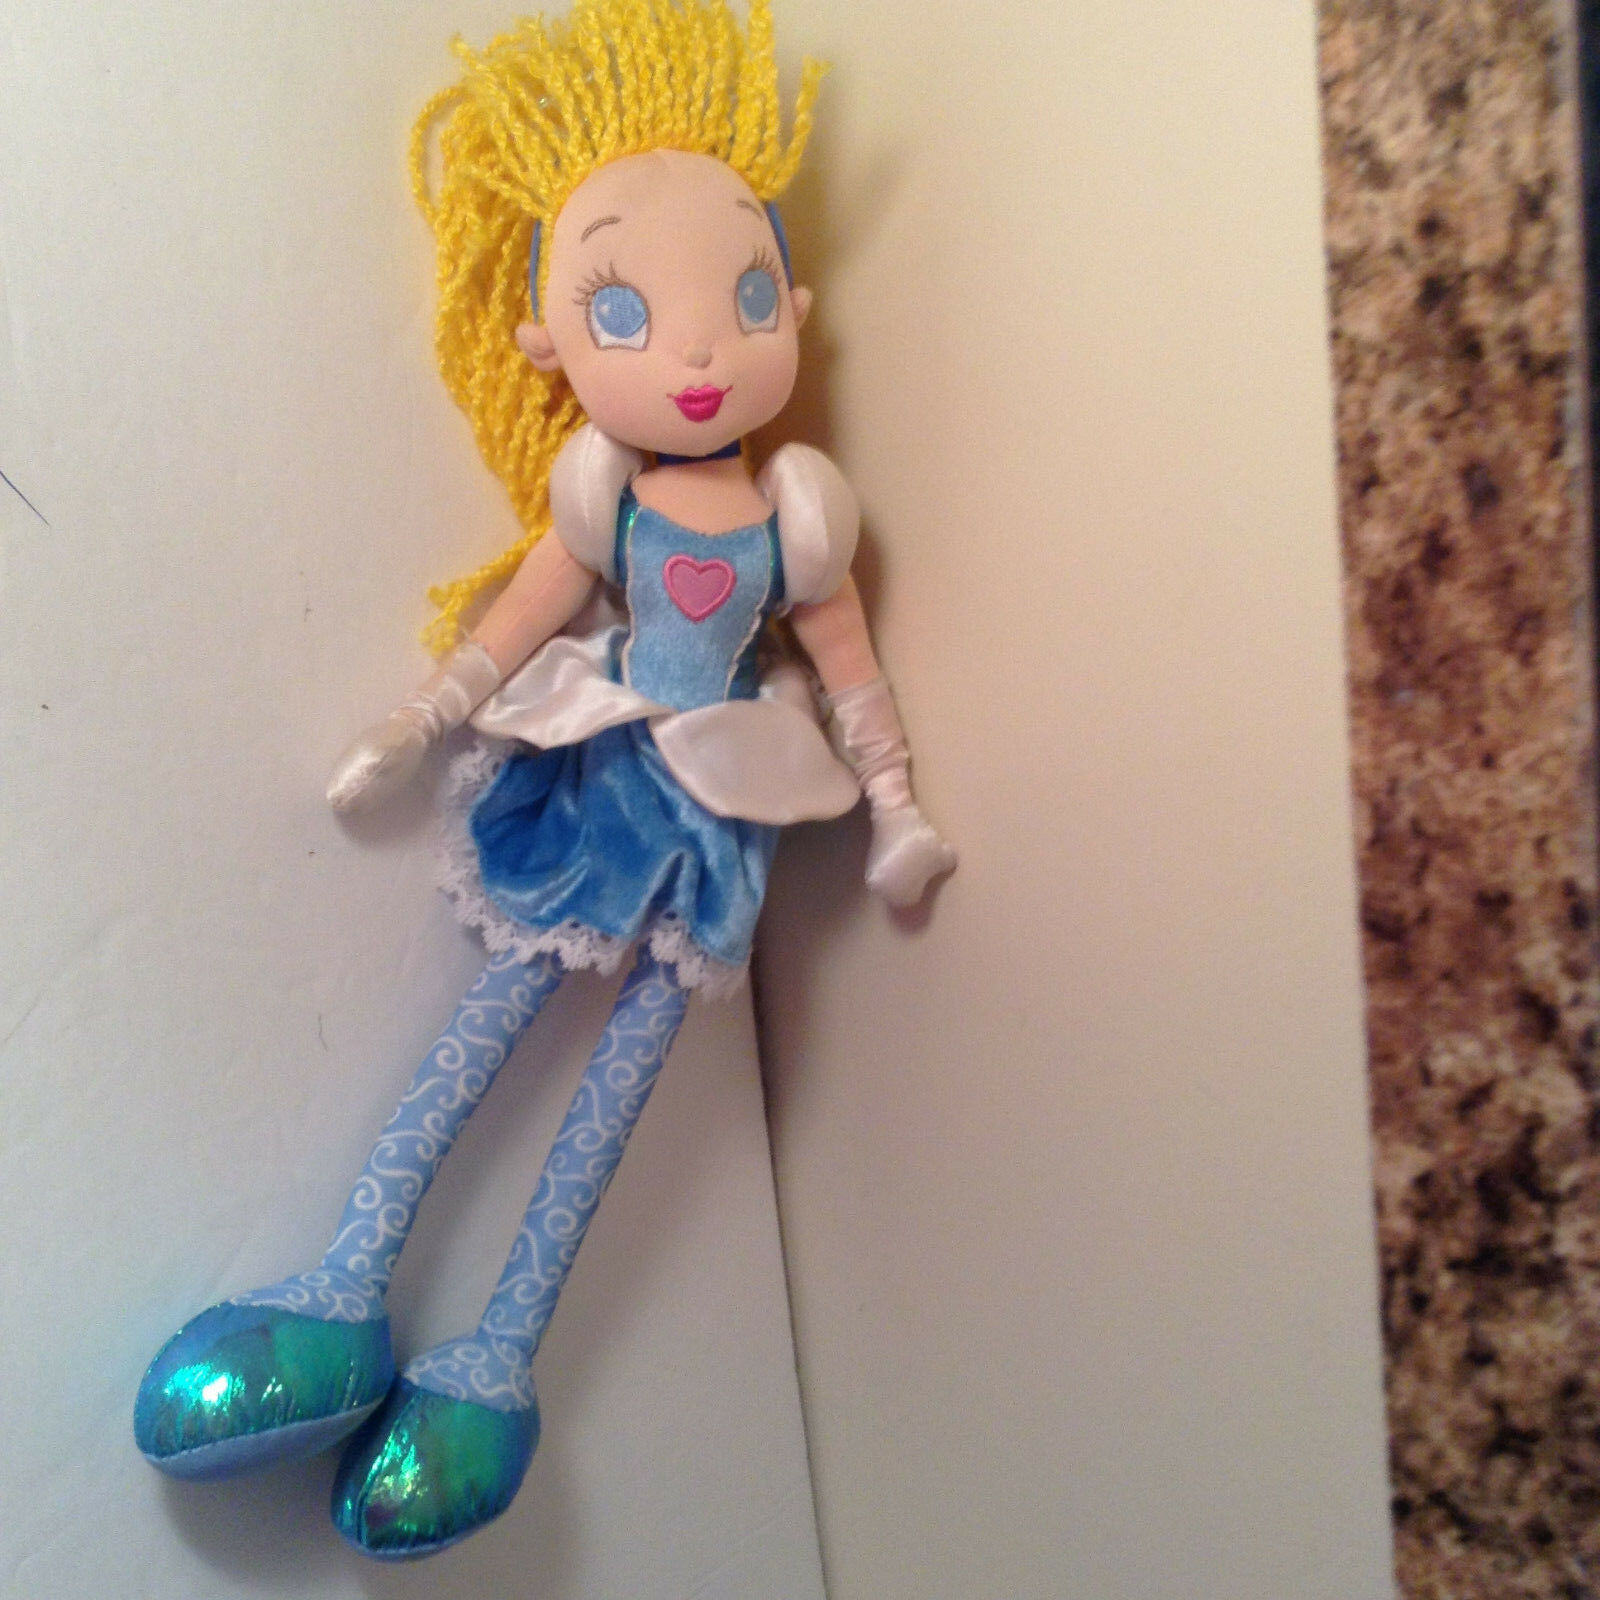 "Disney Soft Toy Plush Cinderella Cindarella 12"" Tall Stuffed Toy Doll"